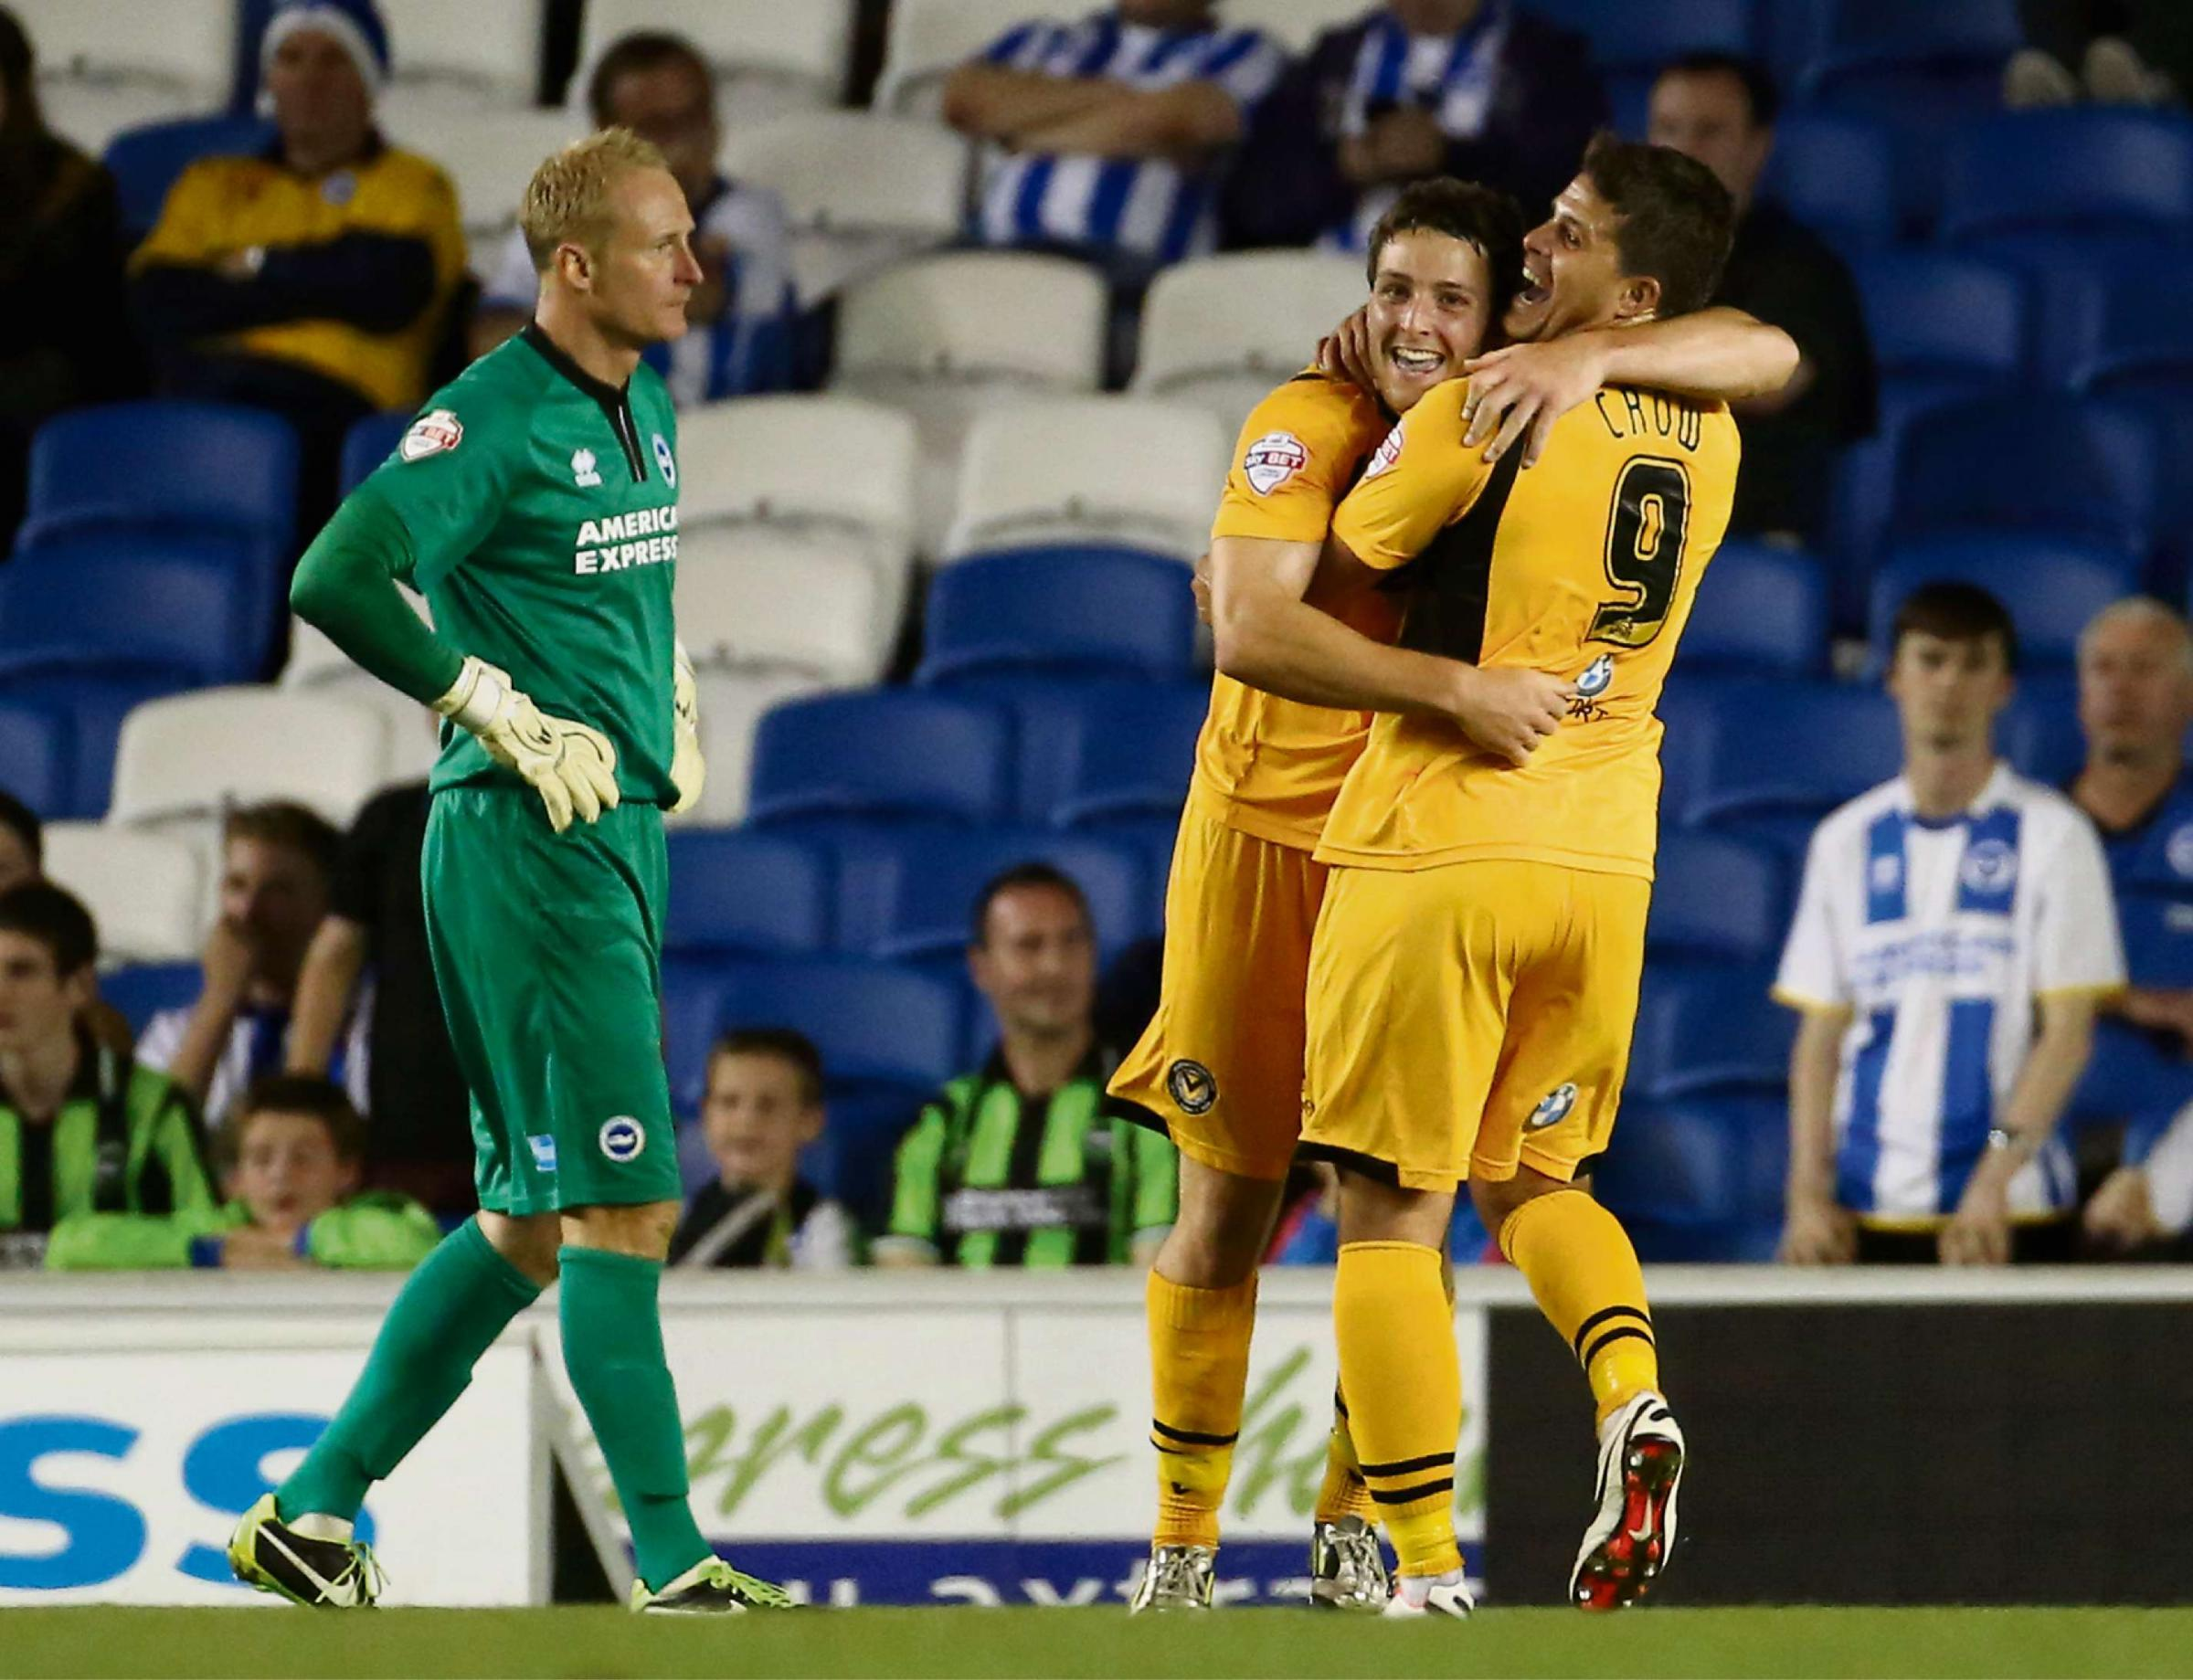 CUP SHOCK: Scorers Conor Washington, left, and Danny Crow celebrate at Brighton in the Capital One Cup last August